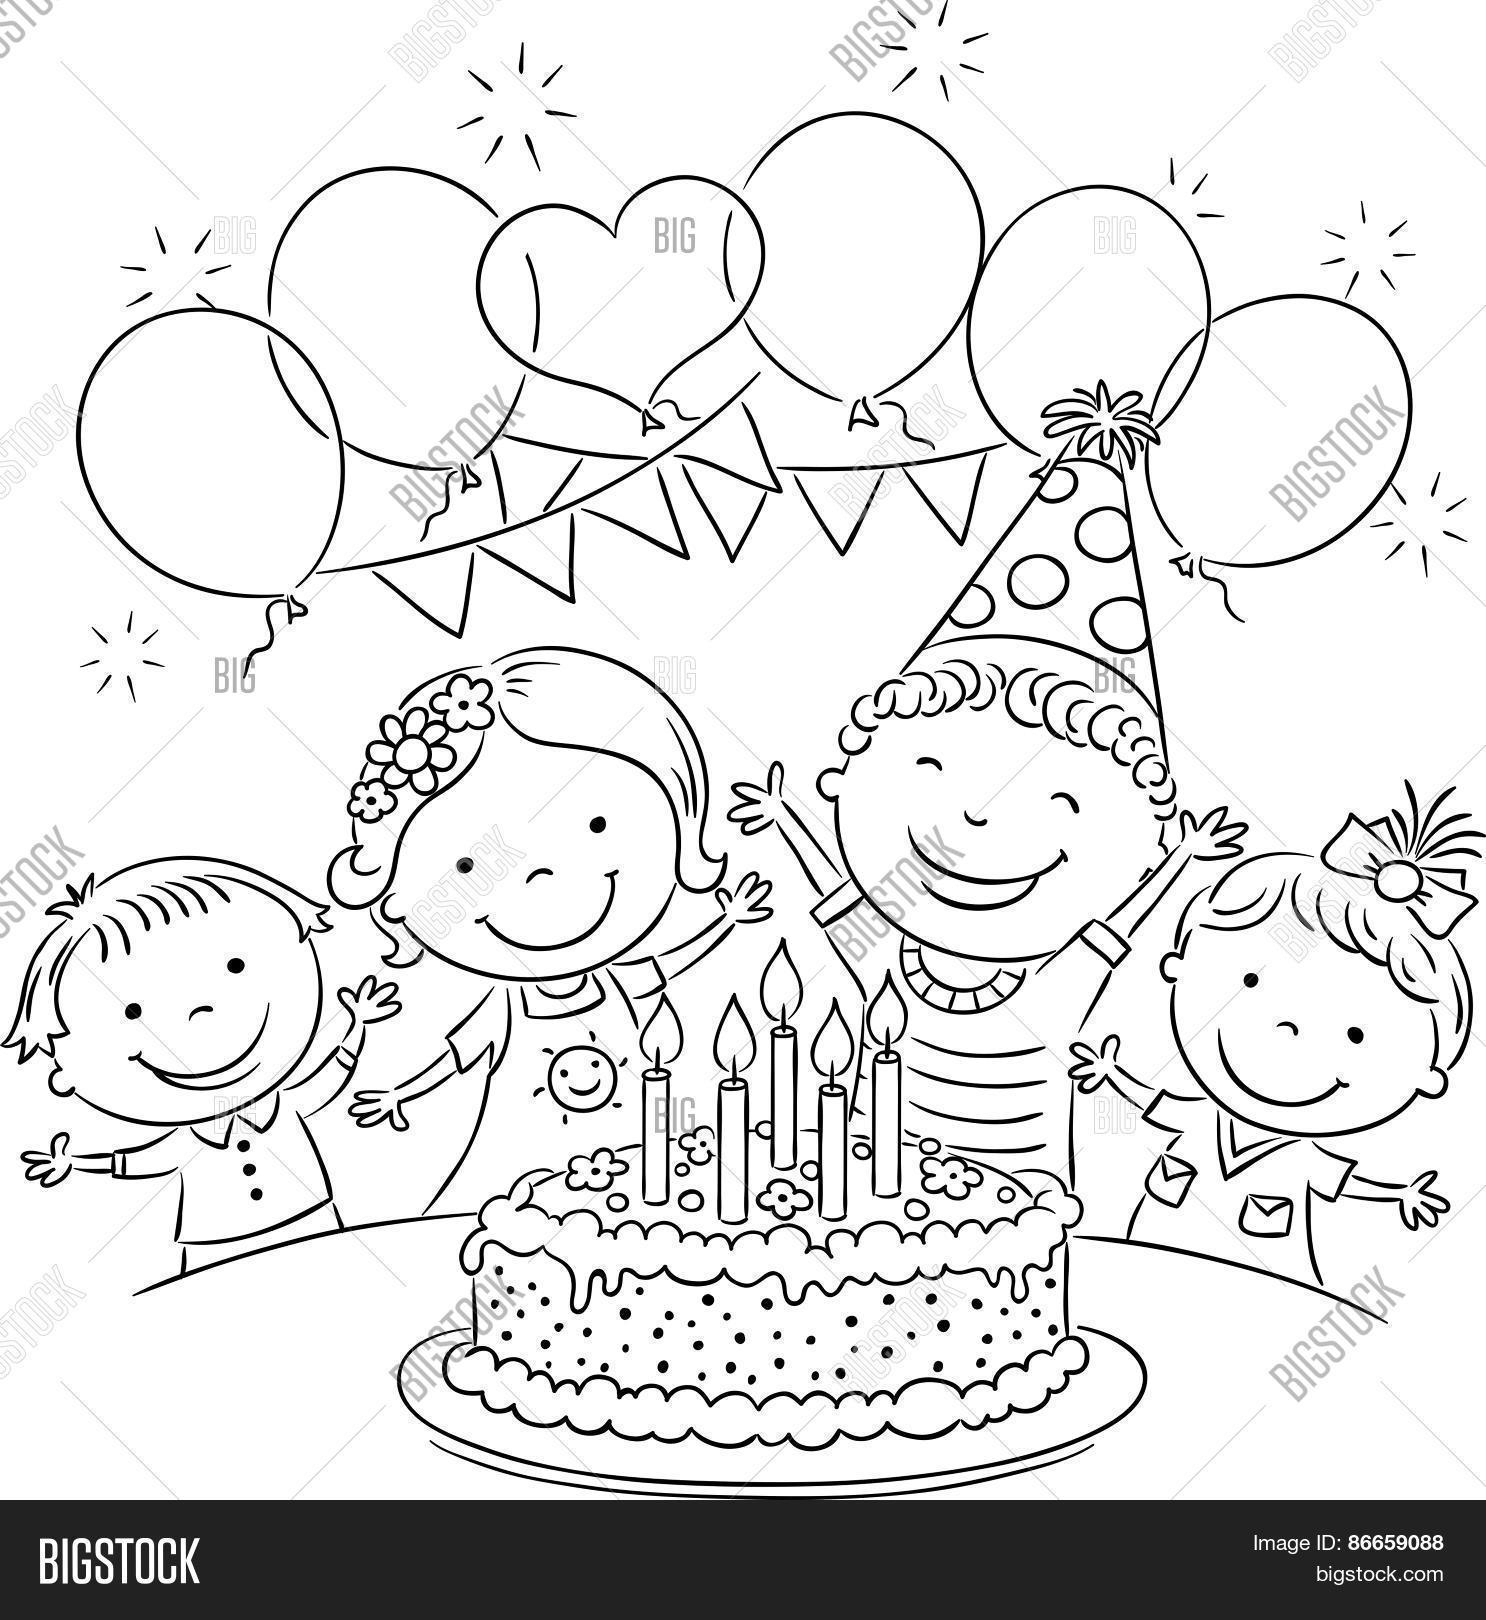 birthday party images for drawing ; birthday-party-scene-for-drawing-kids-birthday-party-outline-stock-vector-stock-photos-bigstock-1